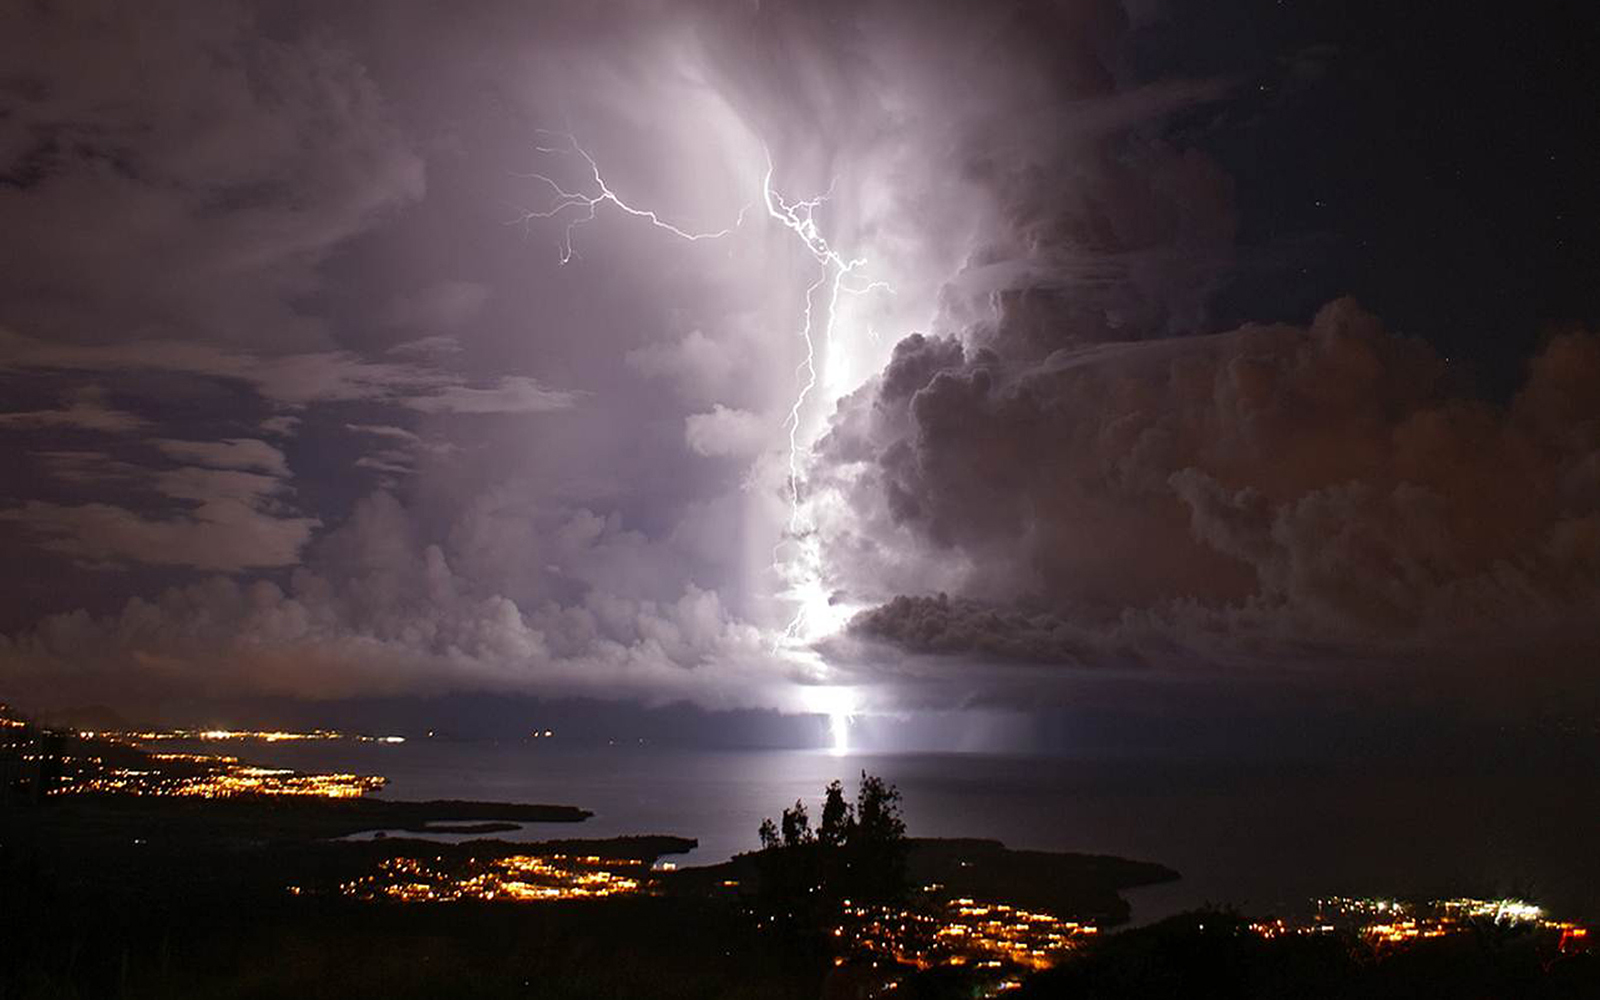 Nature's Most Spectacular Light Shows: The Everlasting Storm near the Catatumbo River in Venezuela